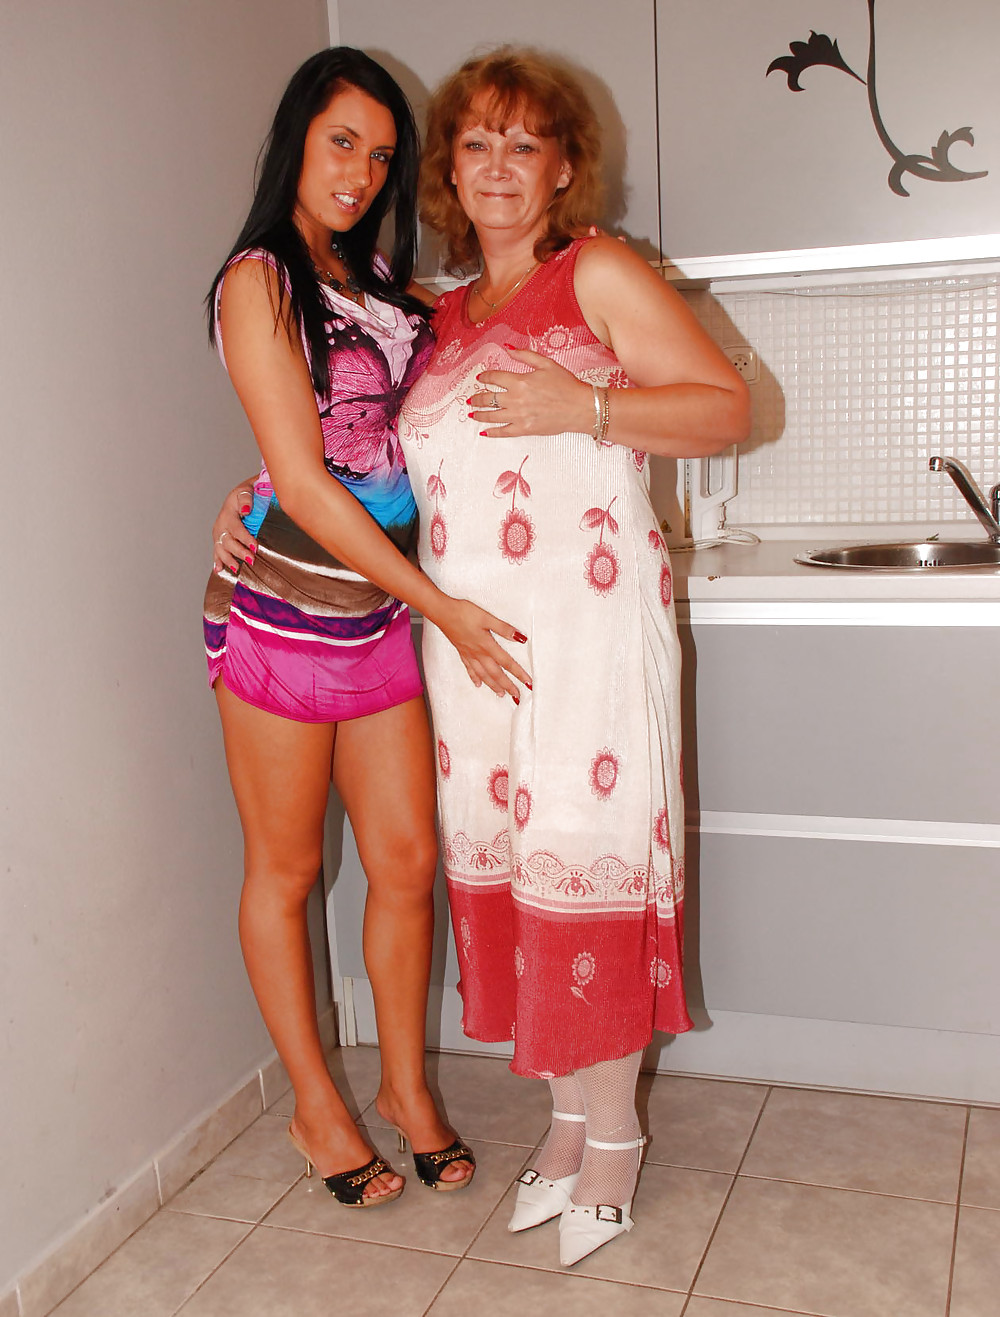 Old lesbian plays with girl — photo 13